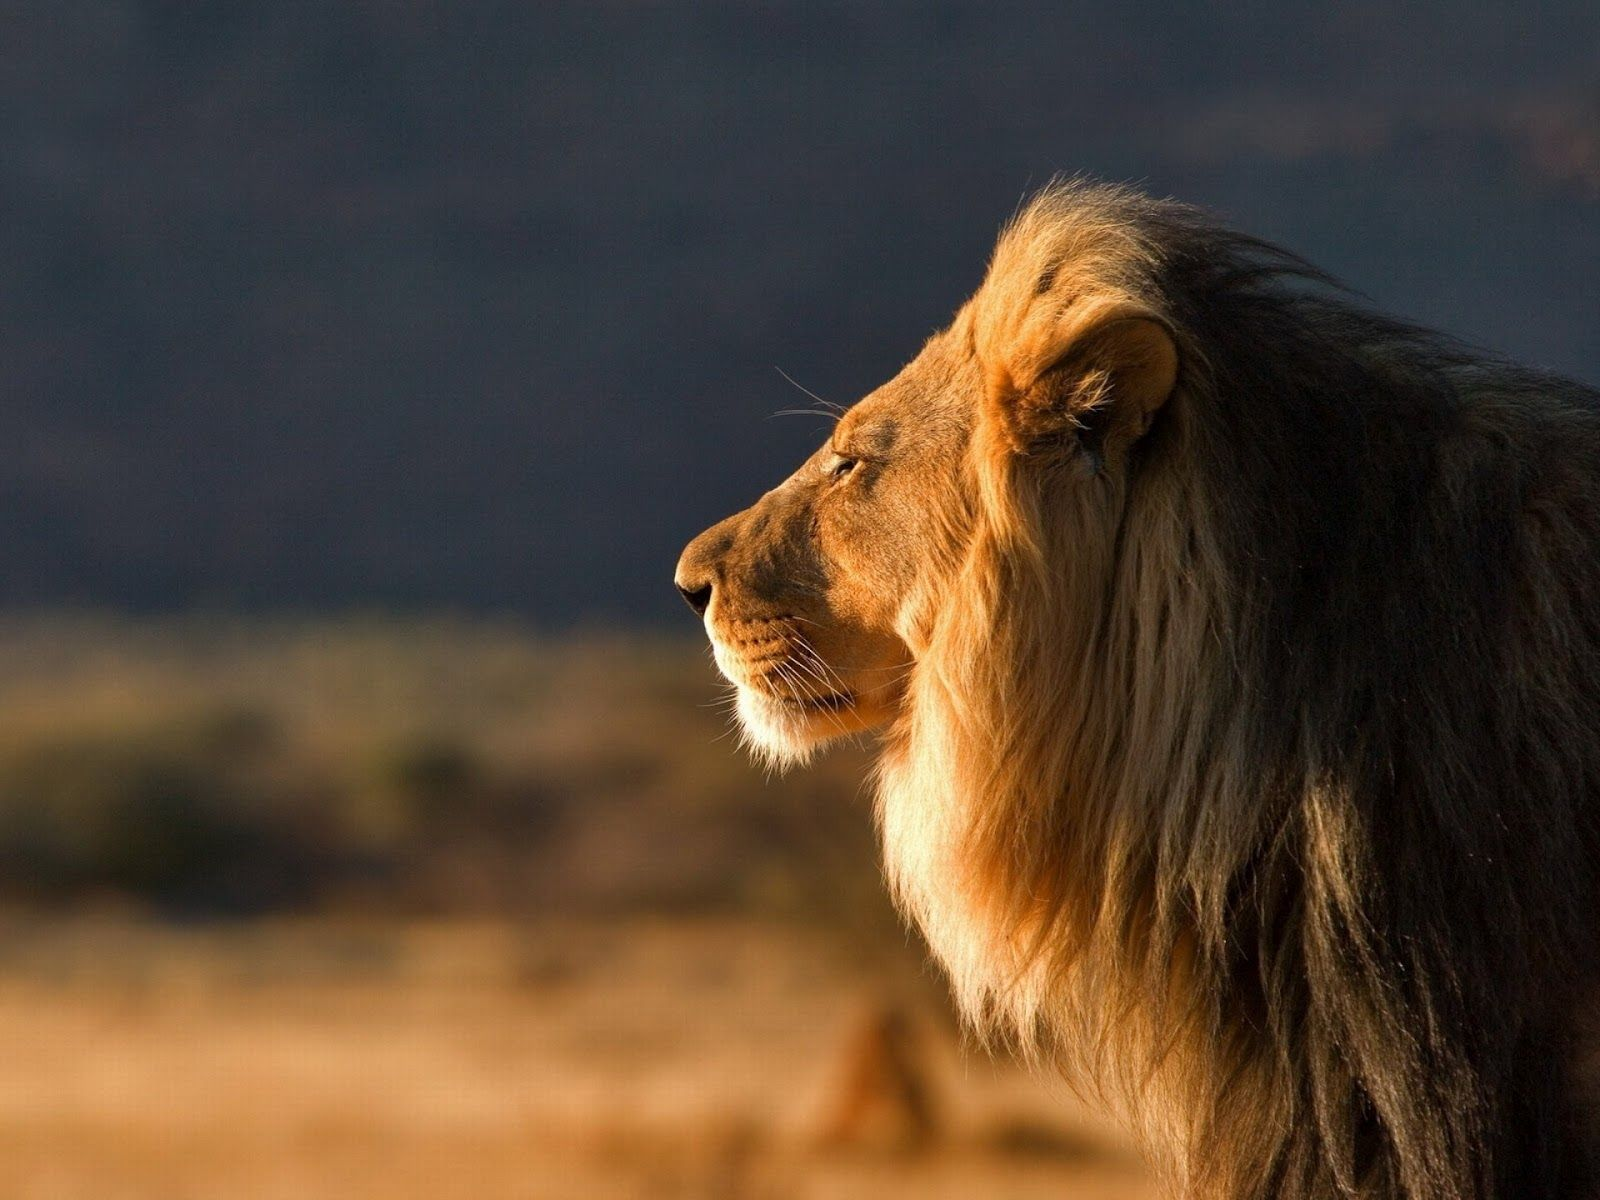 Male Lion Wallpapers Cute Wild Animals Lion Hd Wallpaper Lion Wallpaper